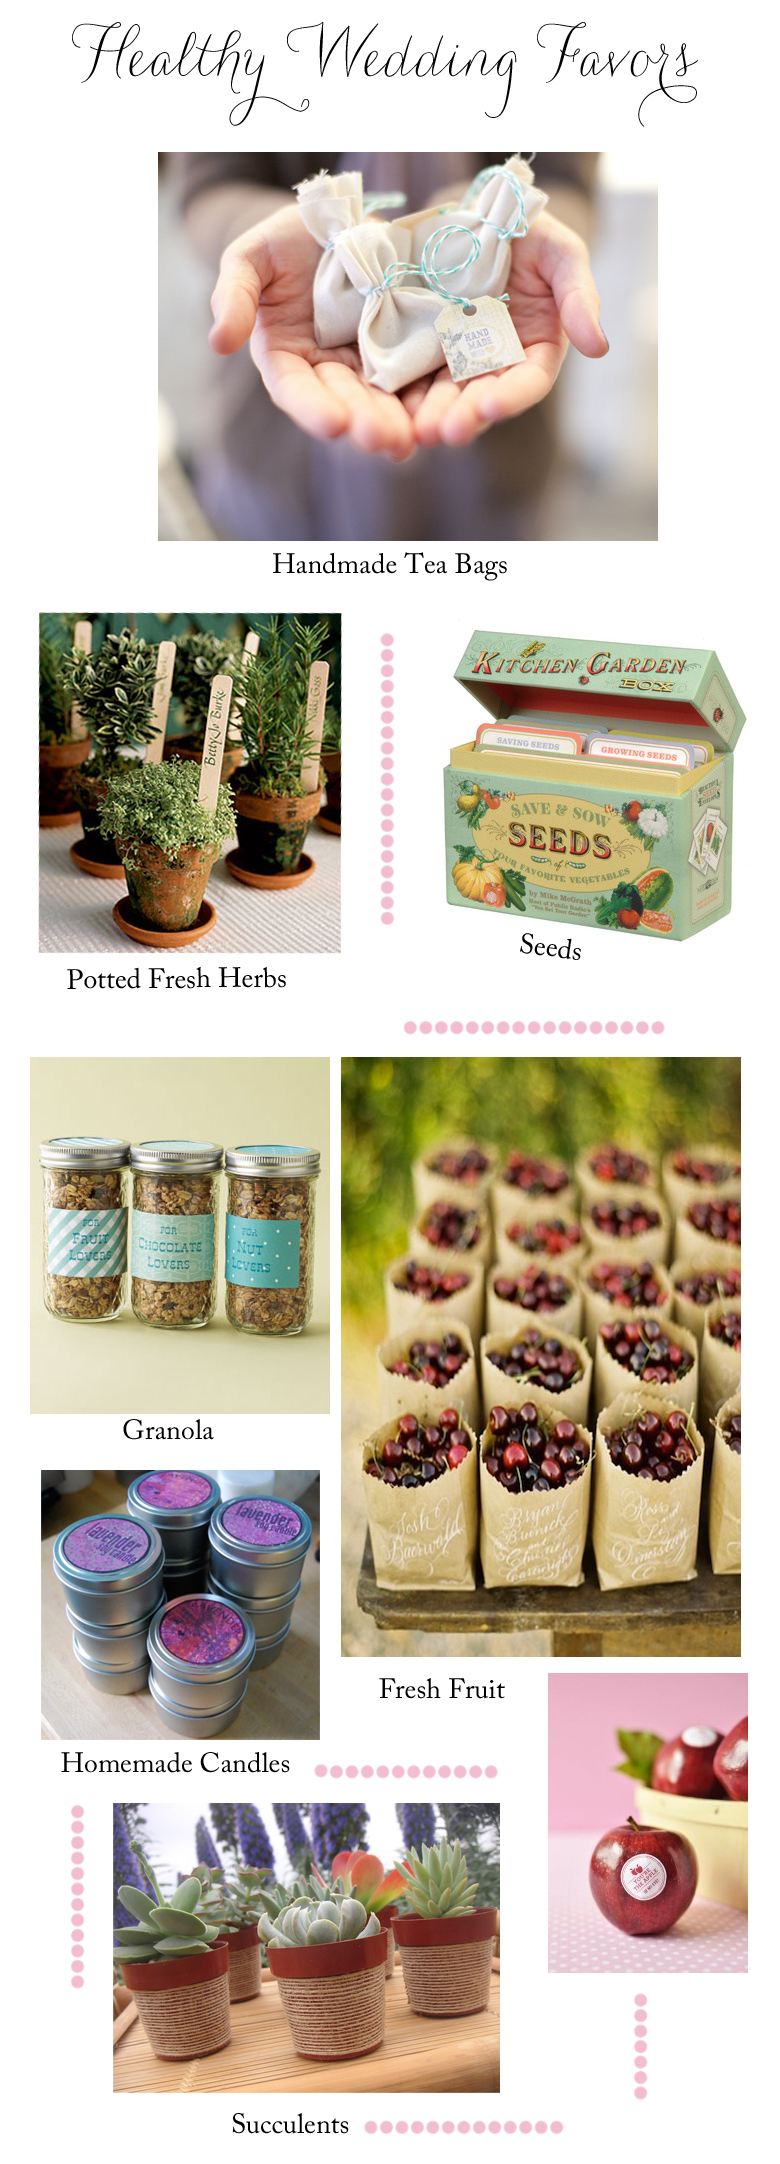 Healthy-Wedding-Favors